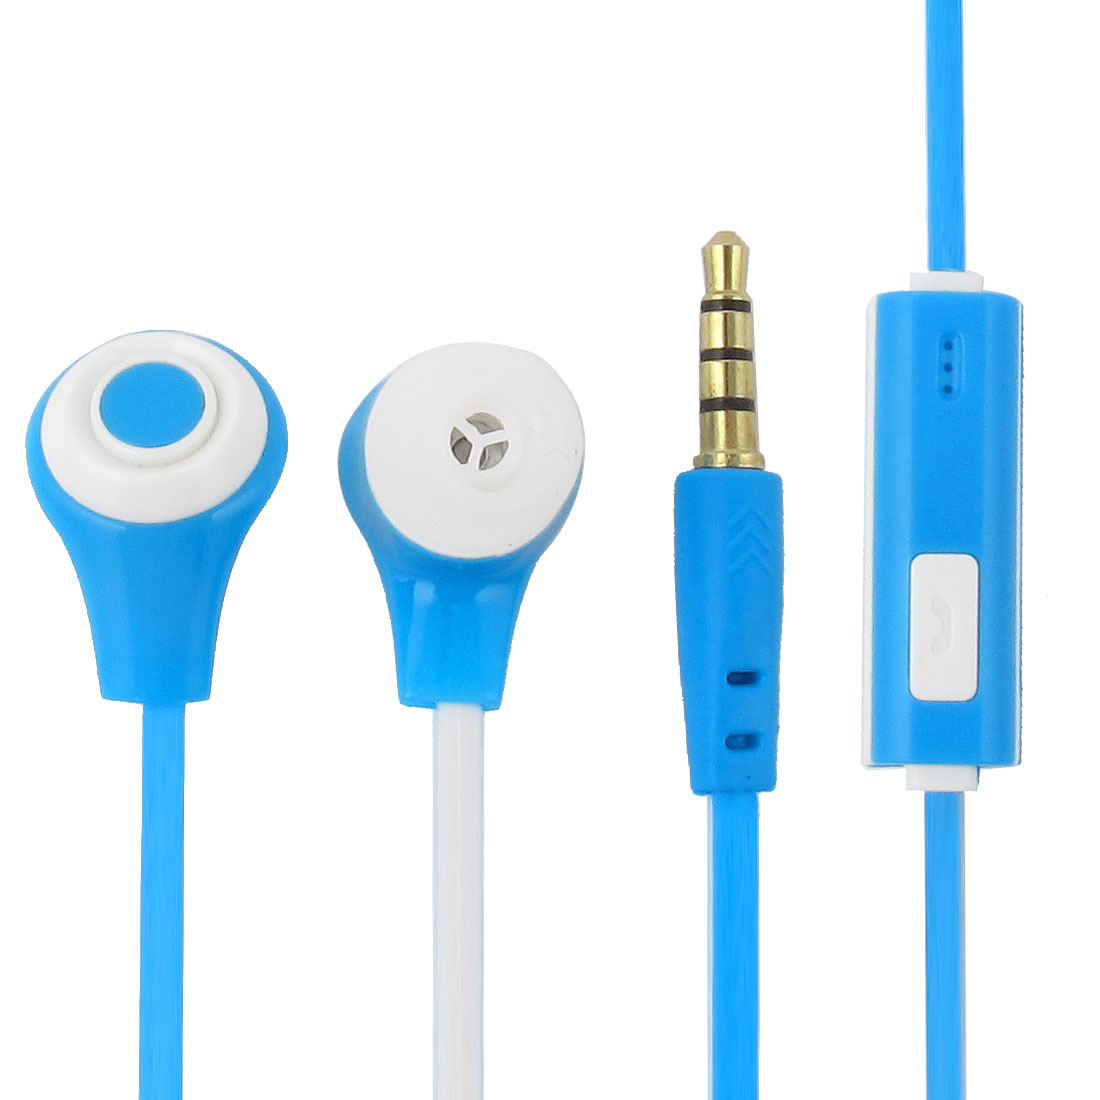 Stereo in Ear Headphone Earphone Earbud with Microphone for Iphone Samsung Android Smartphone Computer